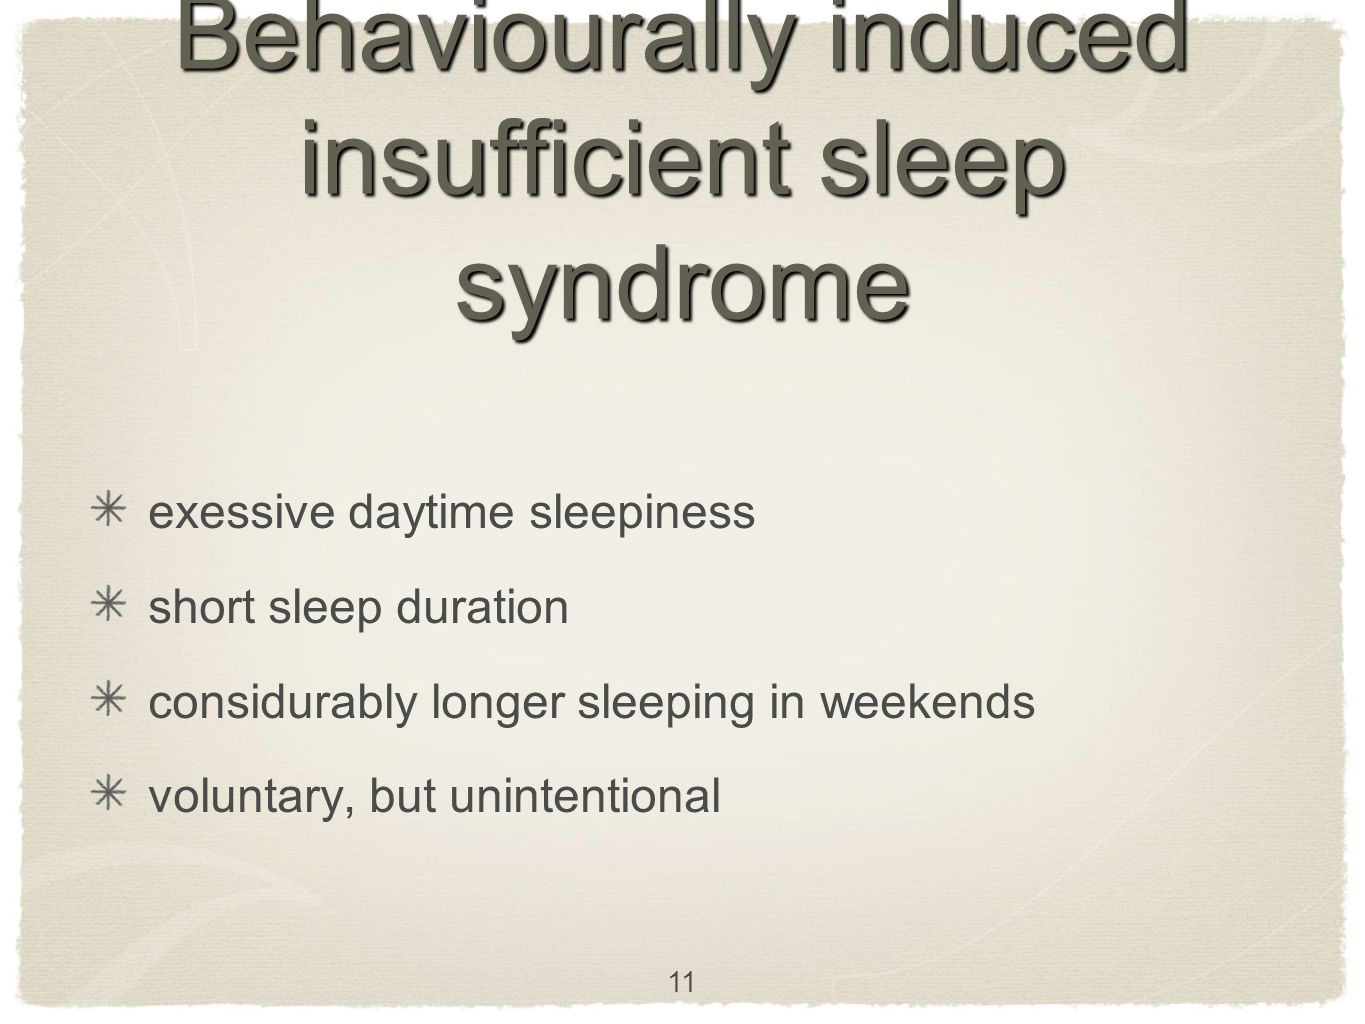 Behaviourally induced insufficient sleep syndrome exessive daytime sleepiness short sleep duration considurably longer sleeping in weekends voluntary, but unintentional 11